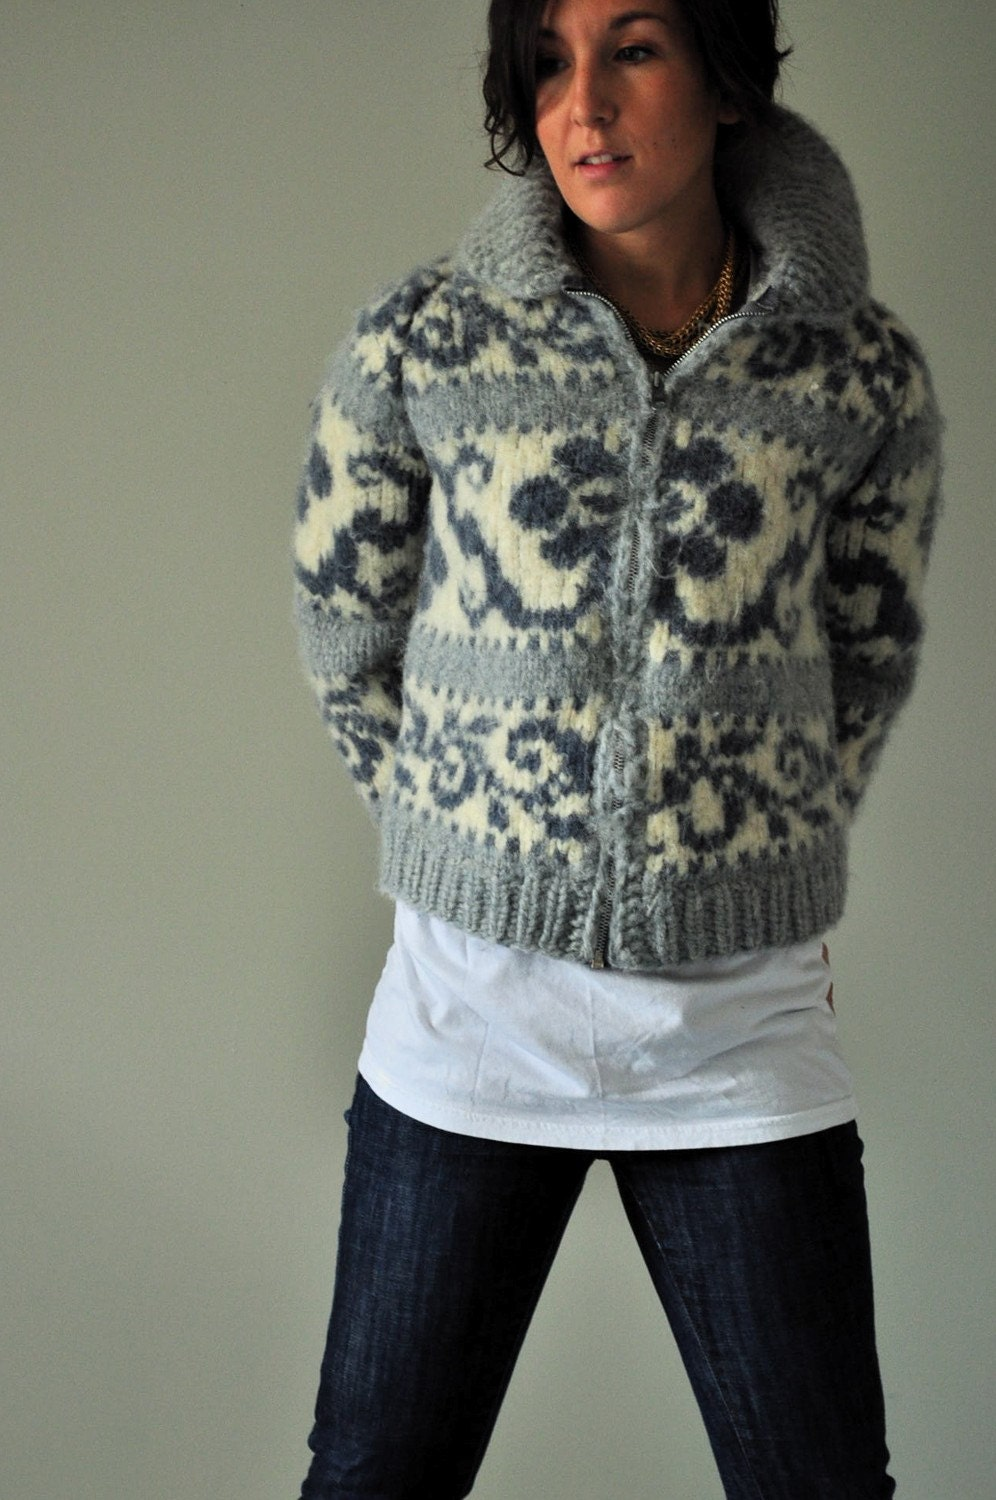 Cowichan Sweater by shanjessmac on Etsy